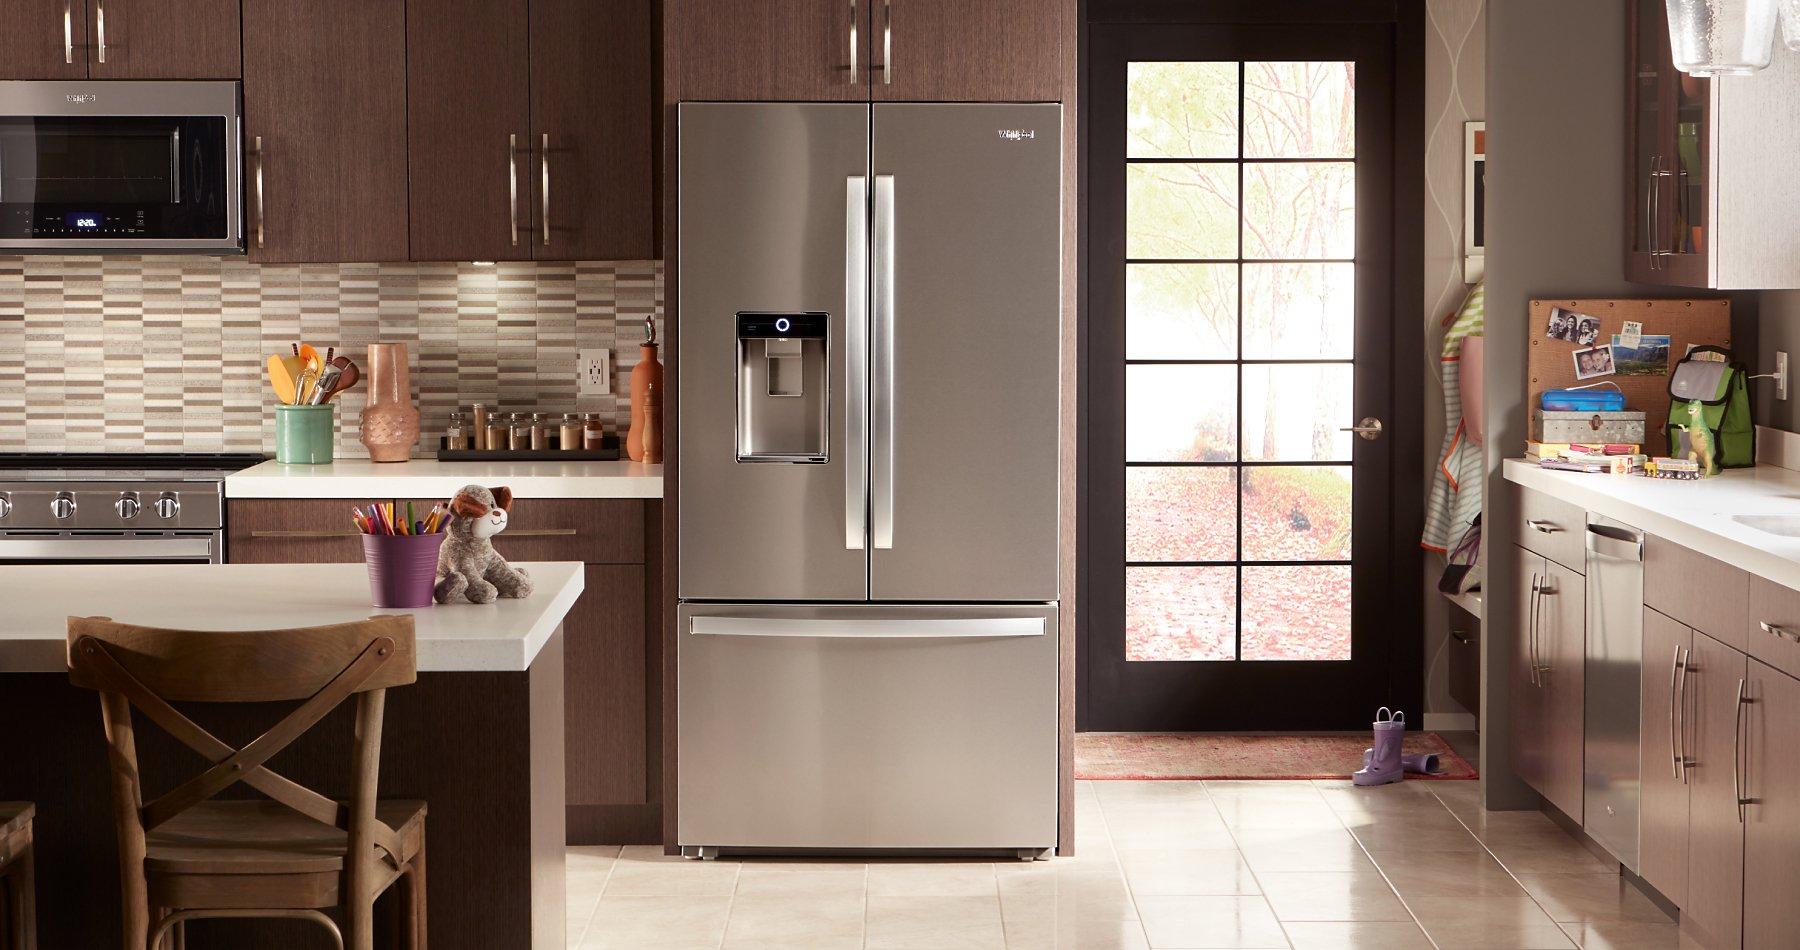 Multiple kitchen appliances are shown in a well-appointed kitchen.